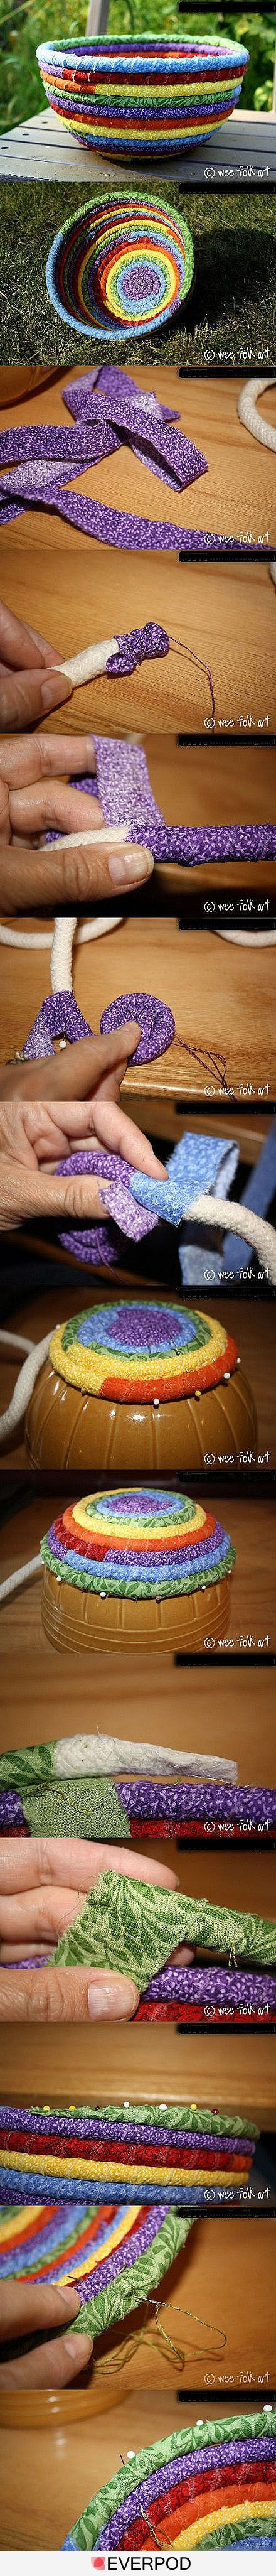 Fabric wrapped rope bowls